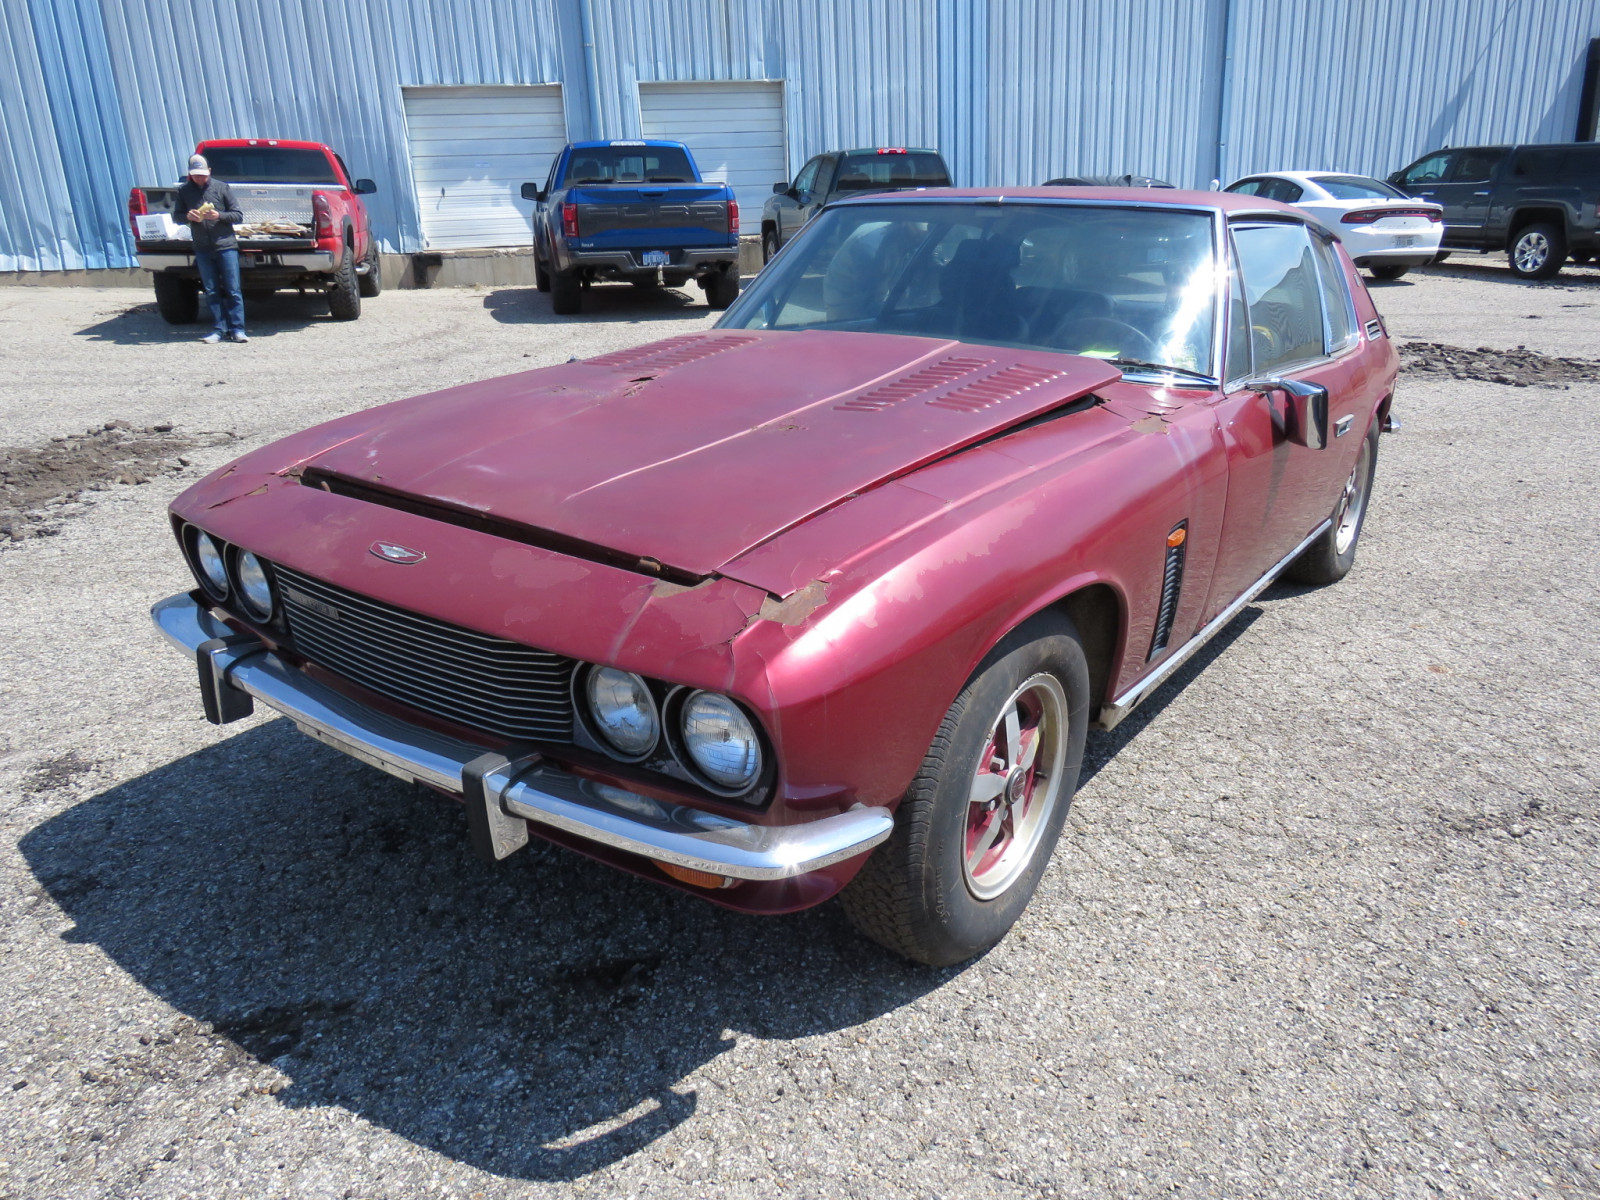 1974 Jensen Interceptor II 2dr Sedan - Image 1